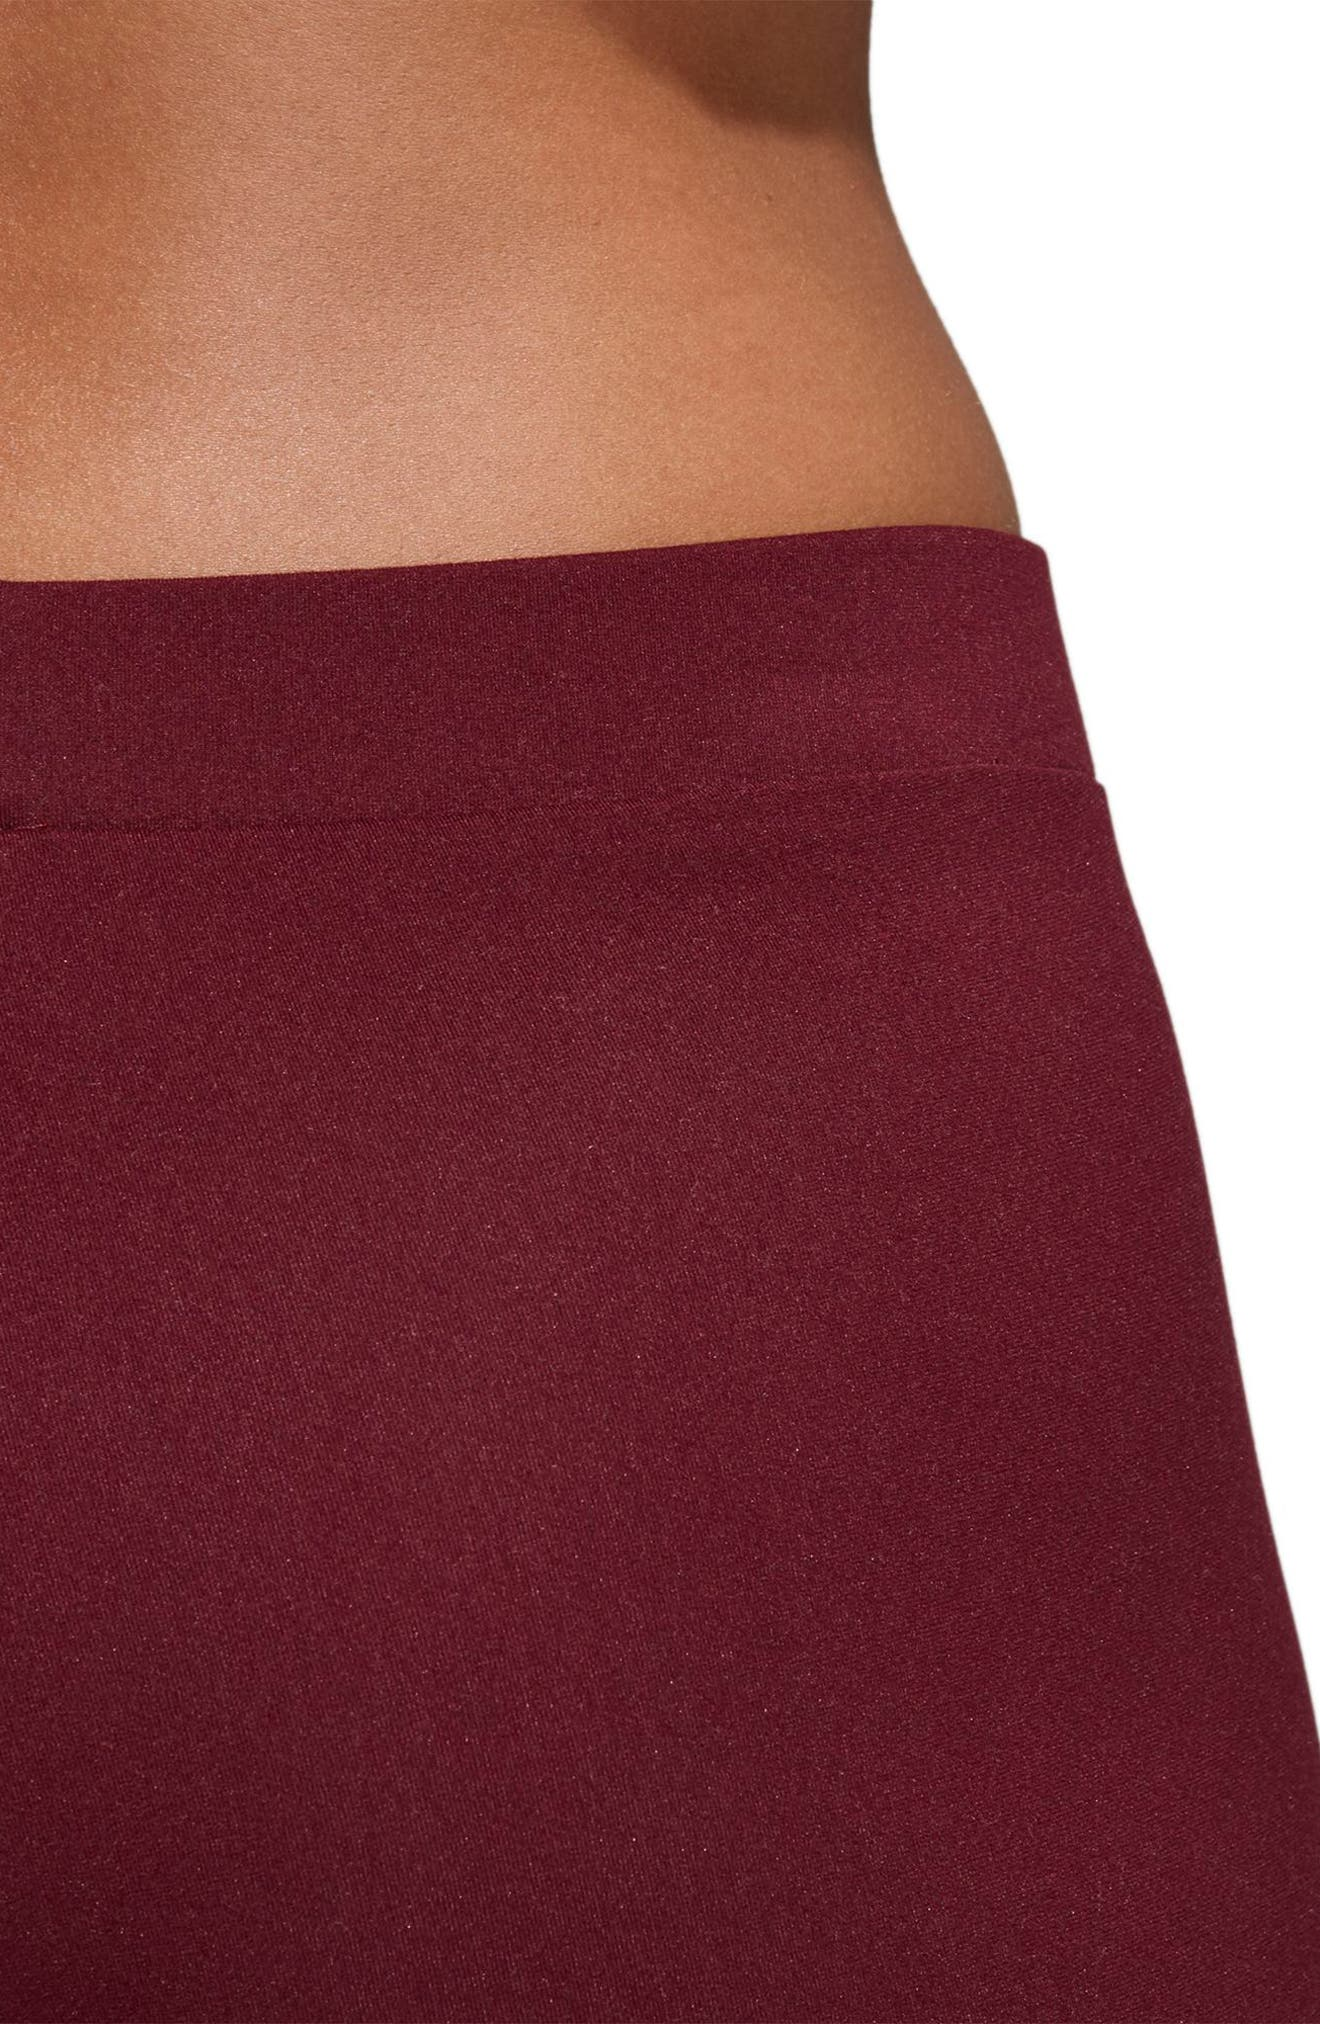 Originals Adibreak Tights,                             Alternate thumbnail 5, color,                             Maroon